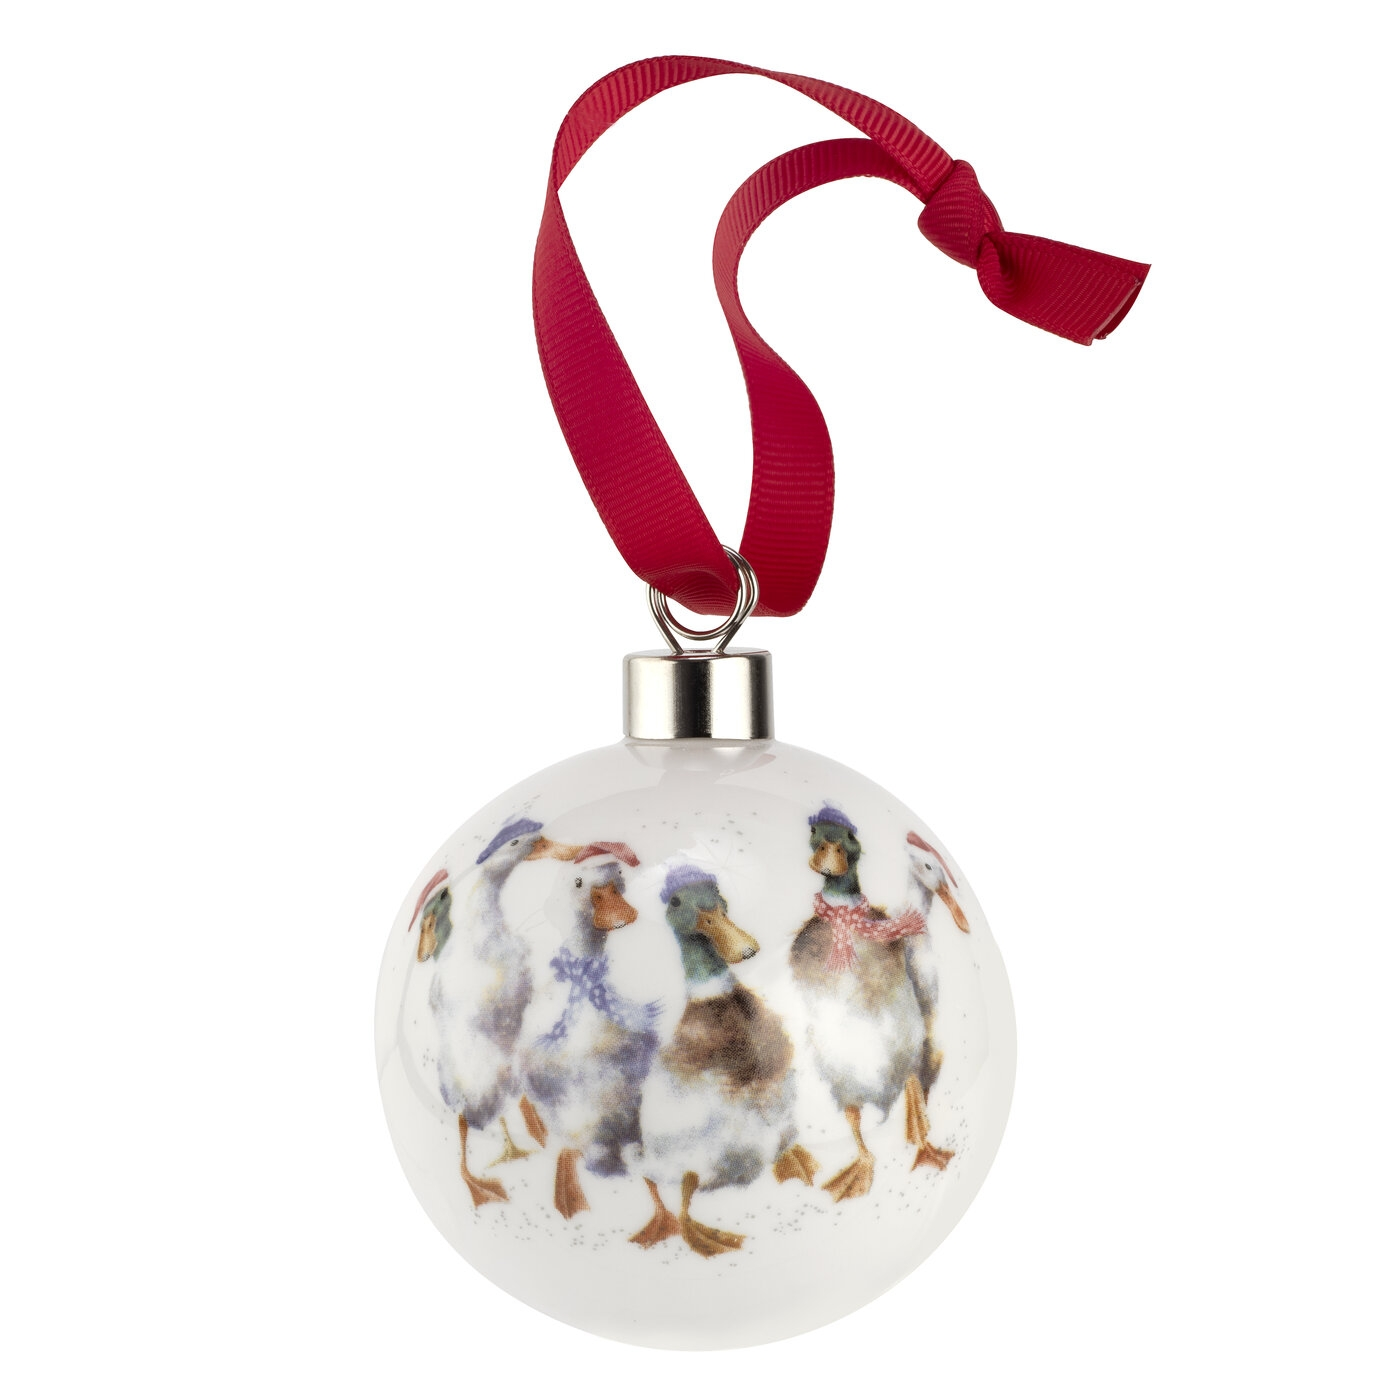 Wrendale Designs Bauble All Wrapped Up (Ducks) image number 0